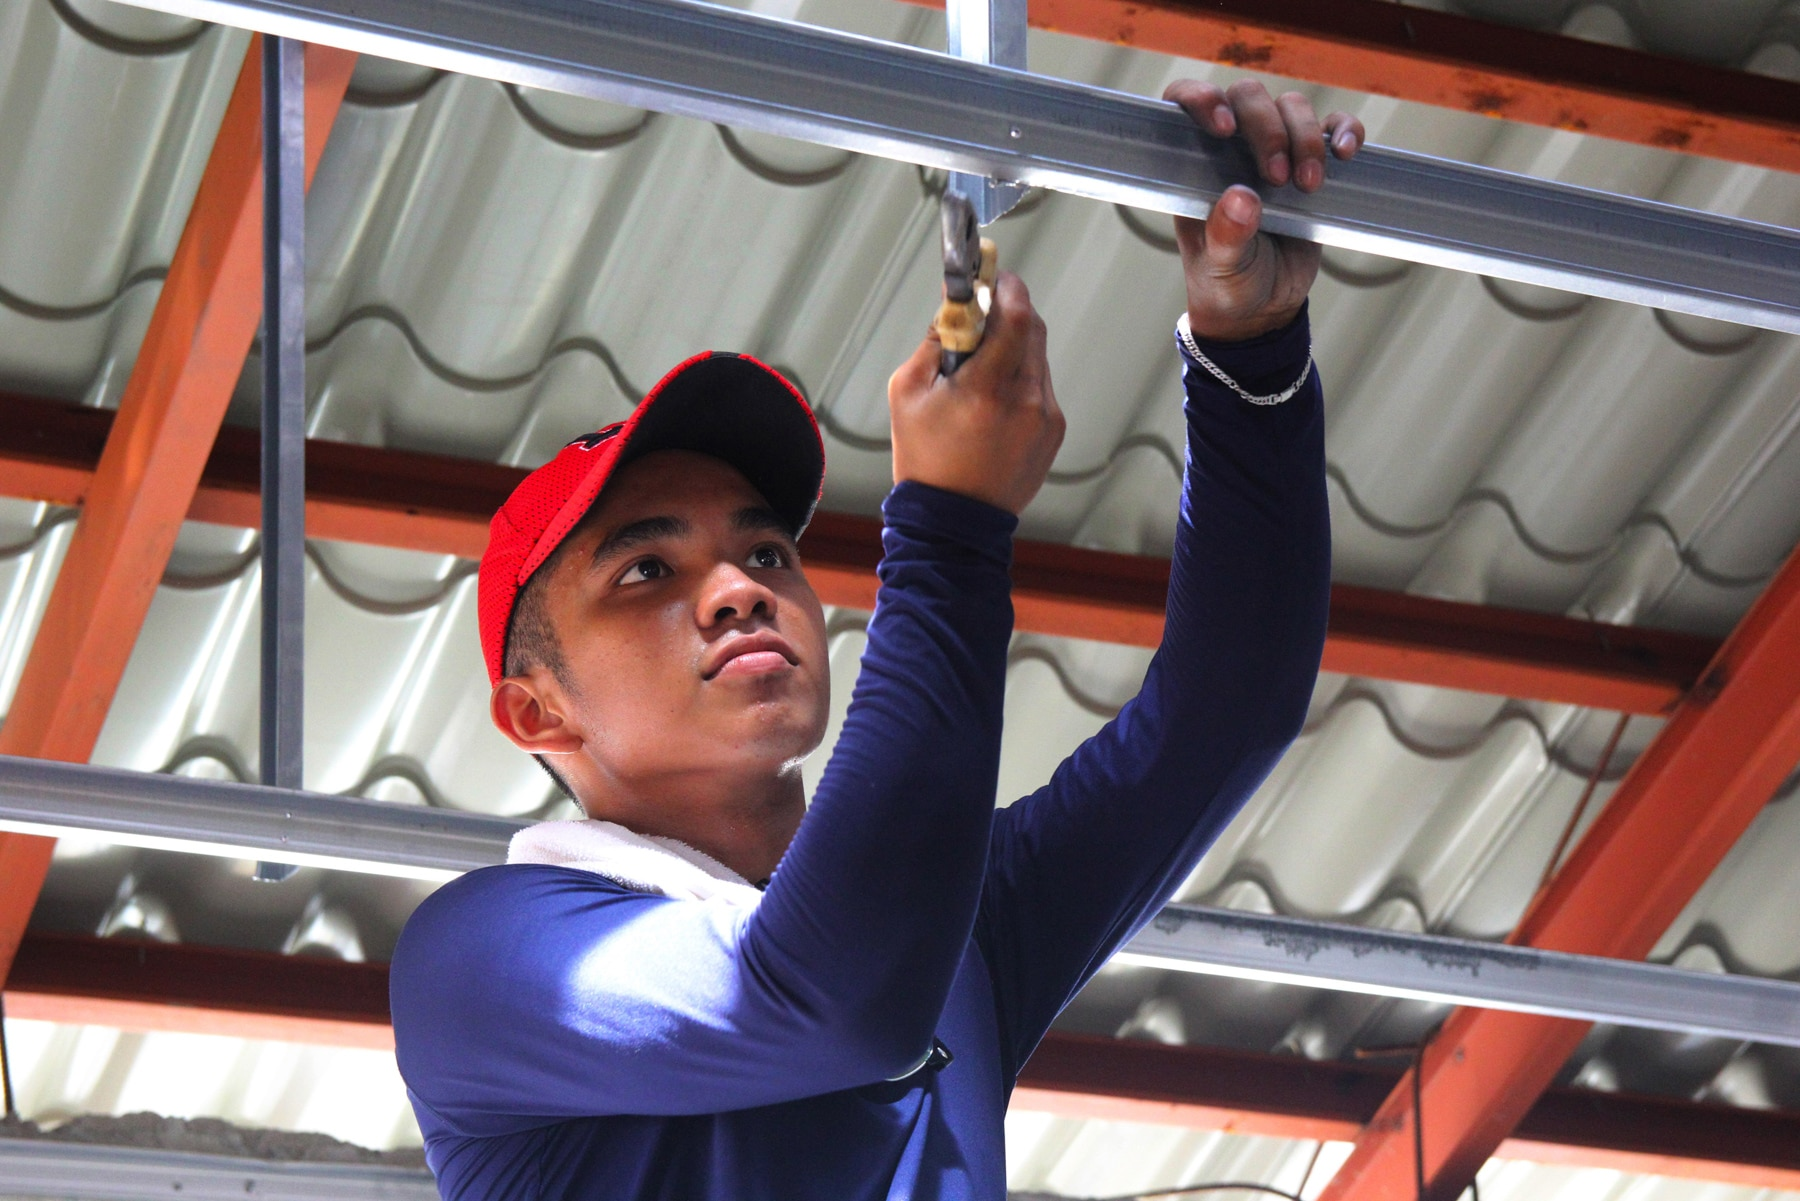 Man securing rivets in ceiling joists (Leoncio M. Rodaje for USAID)